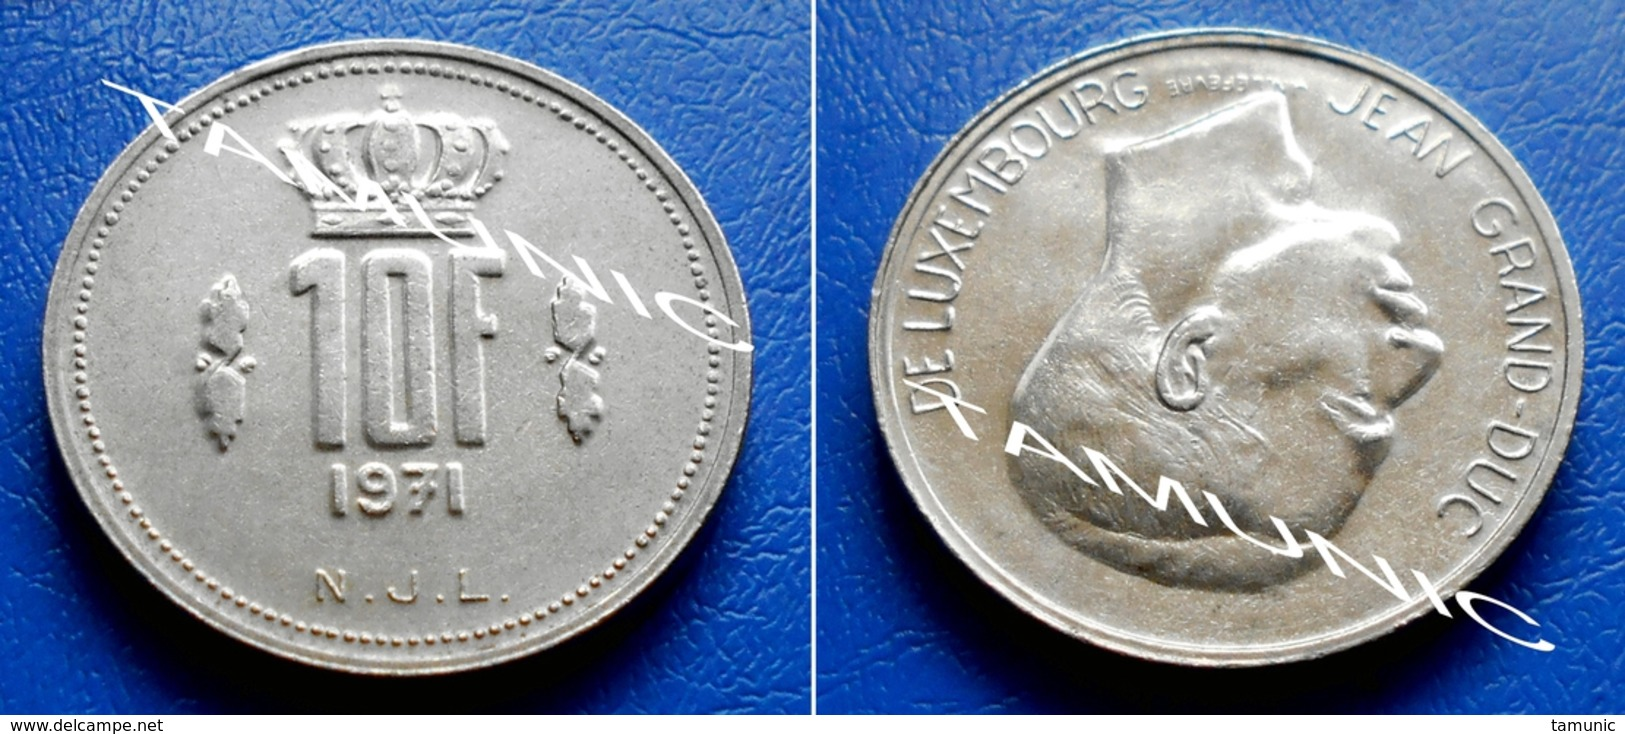 LUXEMBOURG 10 Francs 1971 JEAN GRAND-DUC - Luxembourg